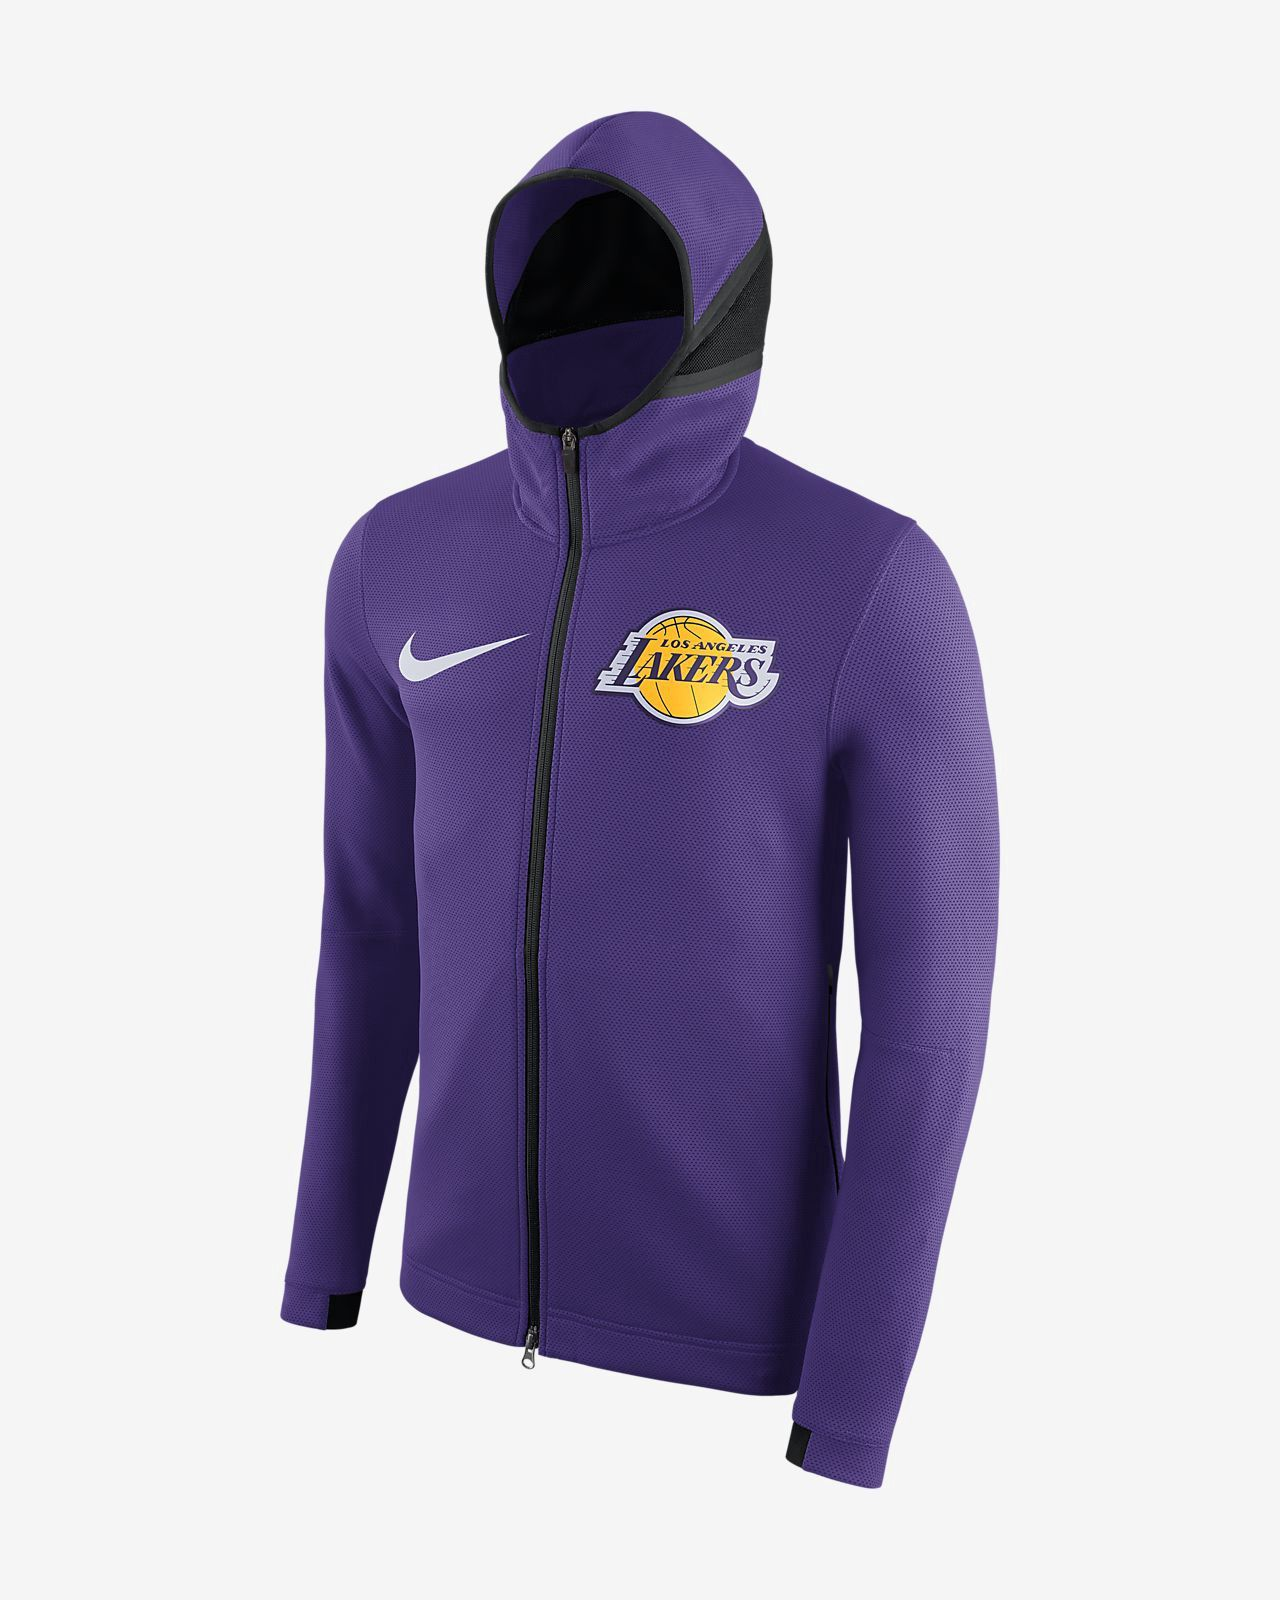 74974b560 Nike Los Angeles Lakers Therma Flex Showtime Men s Nba Hoodie - 2XL ...